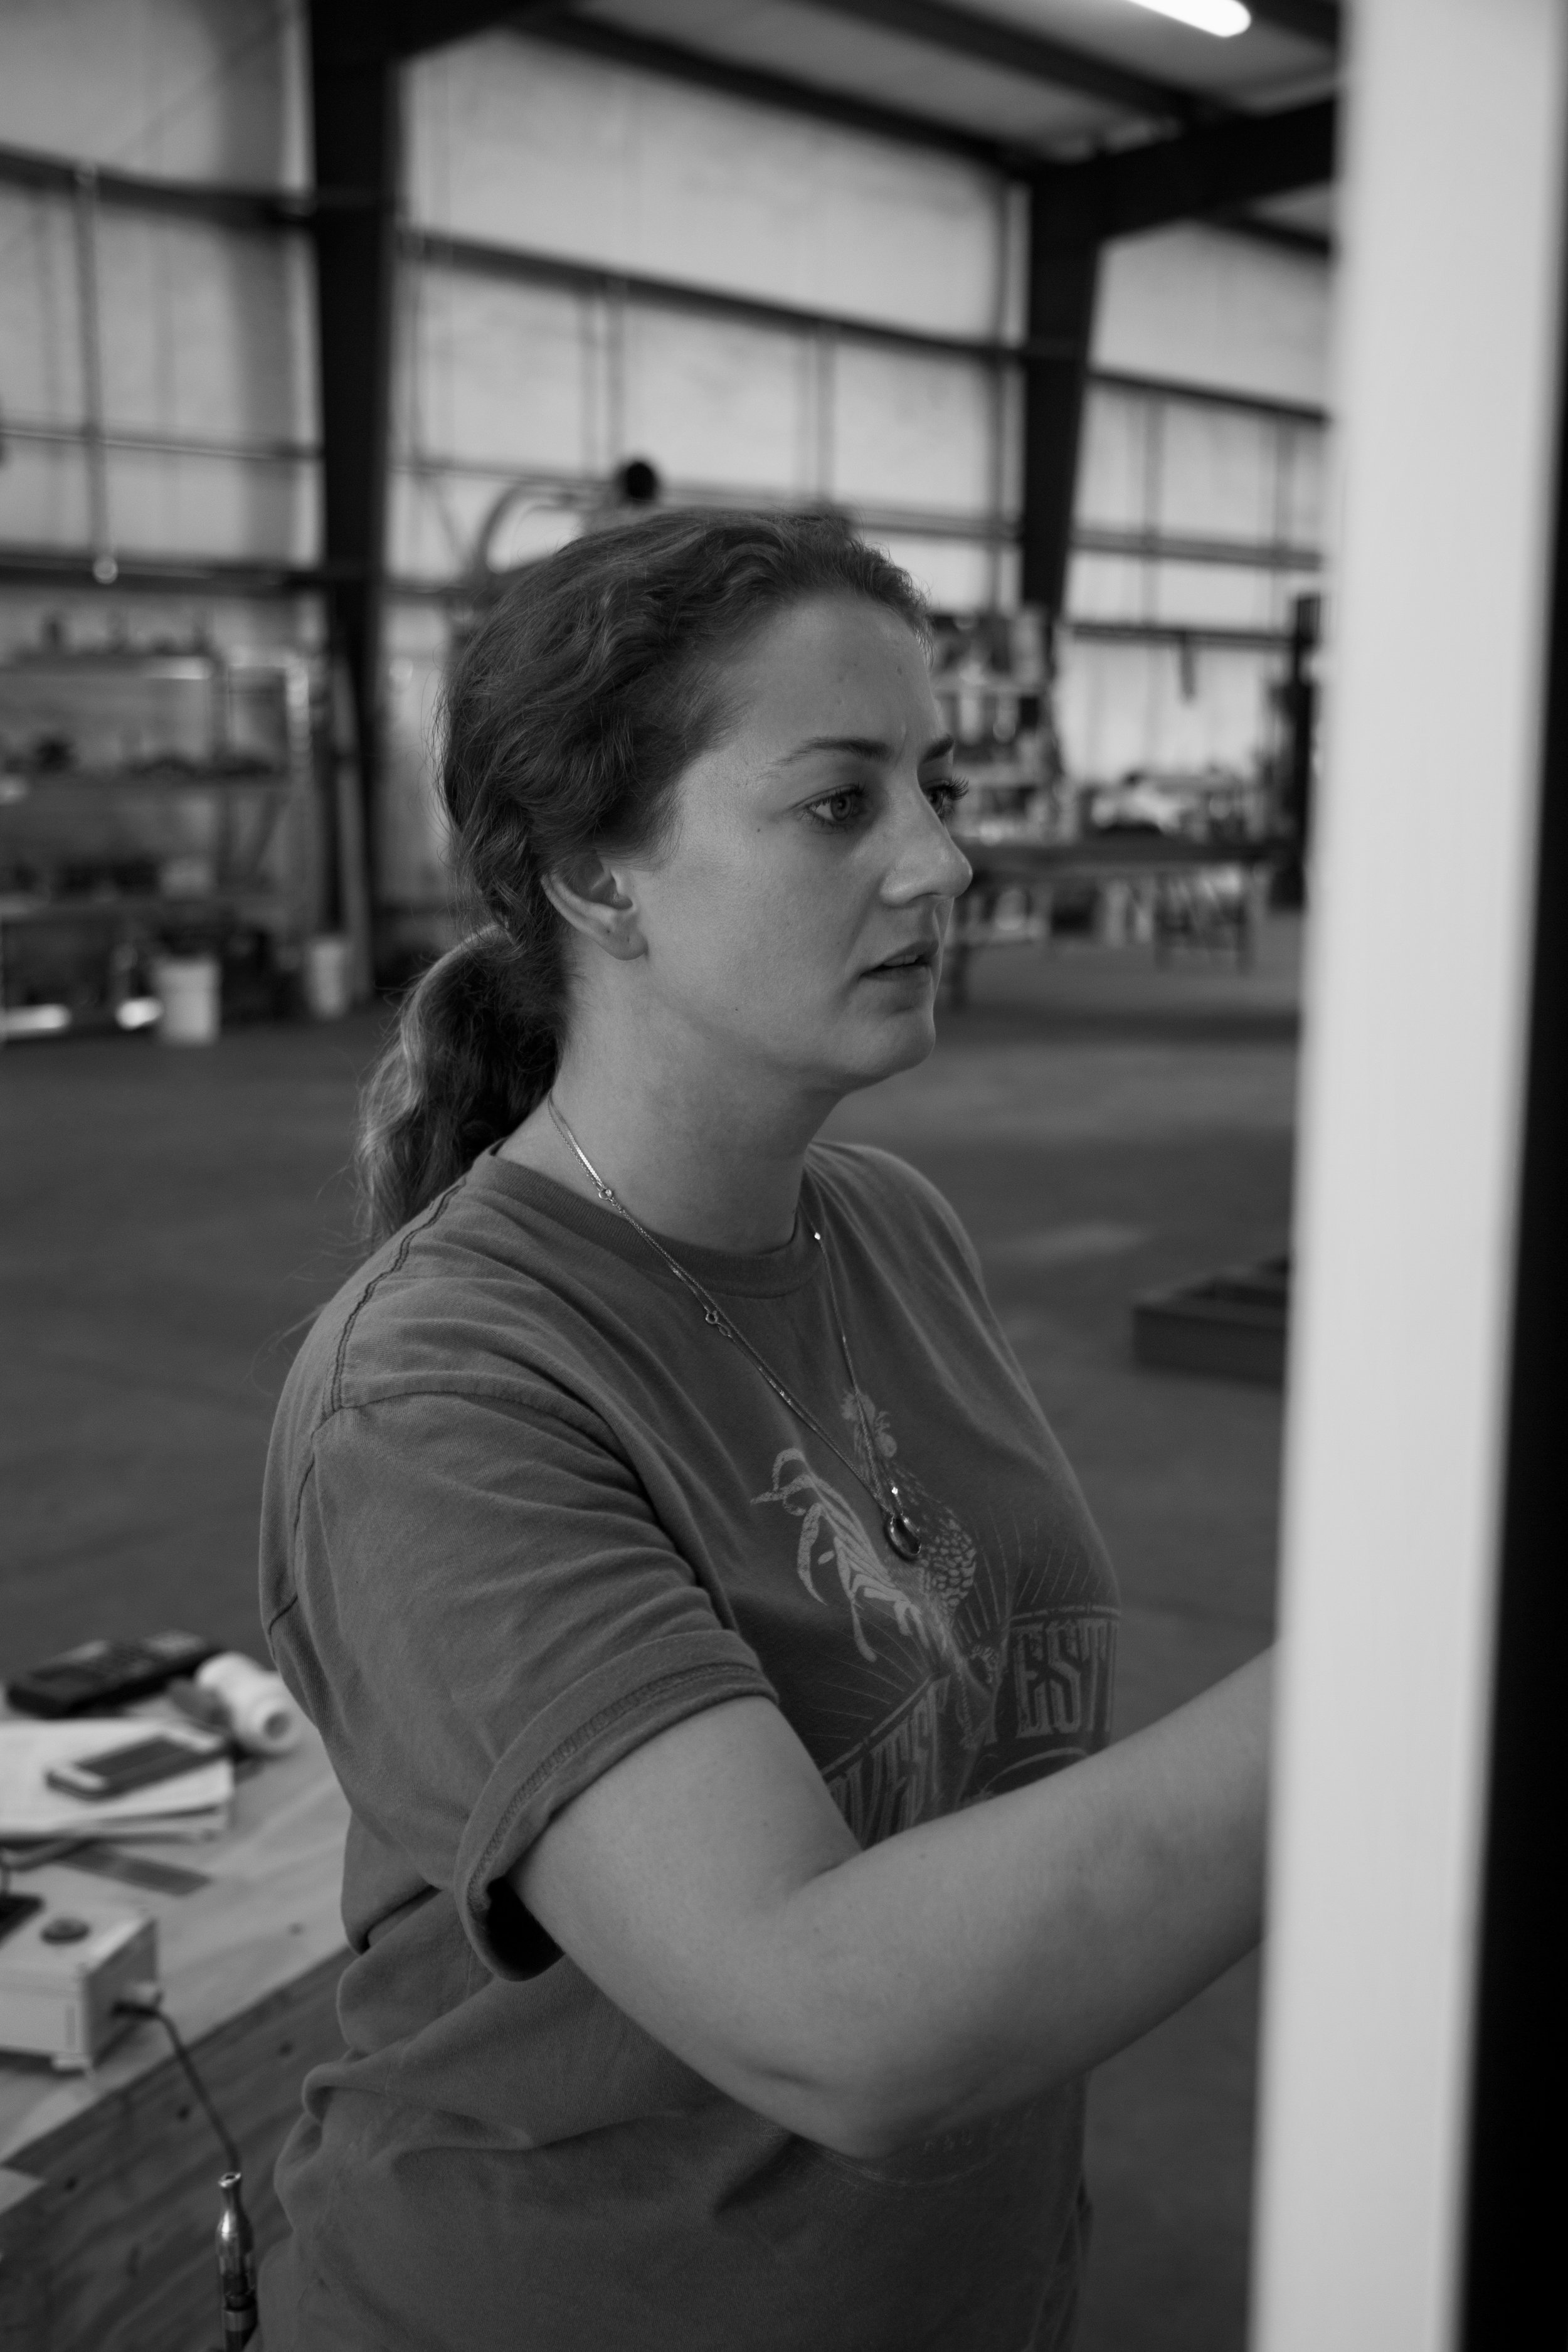 A True Professional. Jessica is the most recent member of BIG to be recognized as a Professional Engineer,the profession's highest standard of competence.